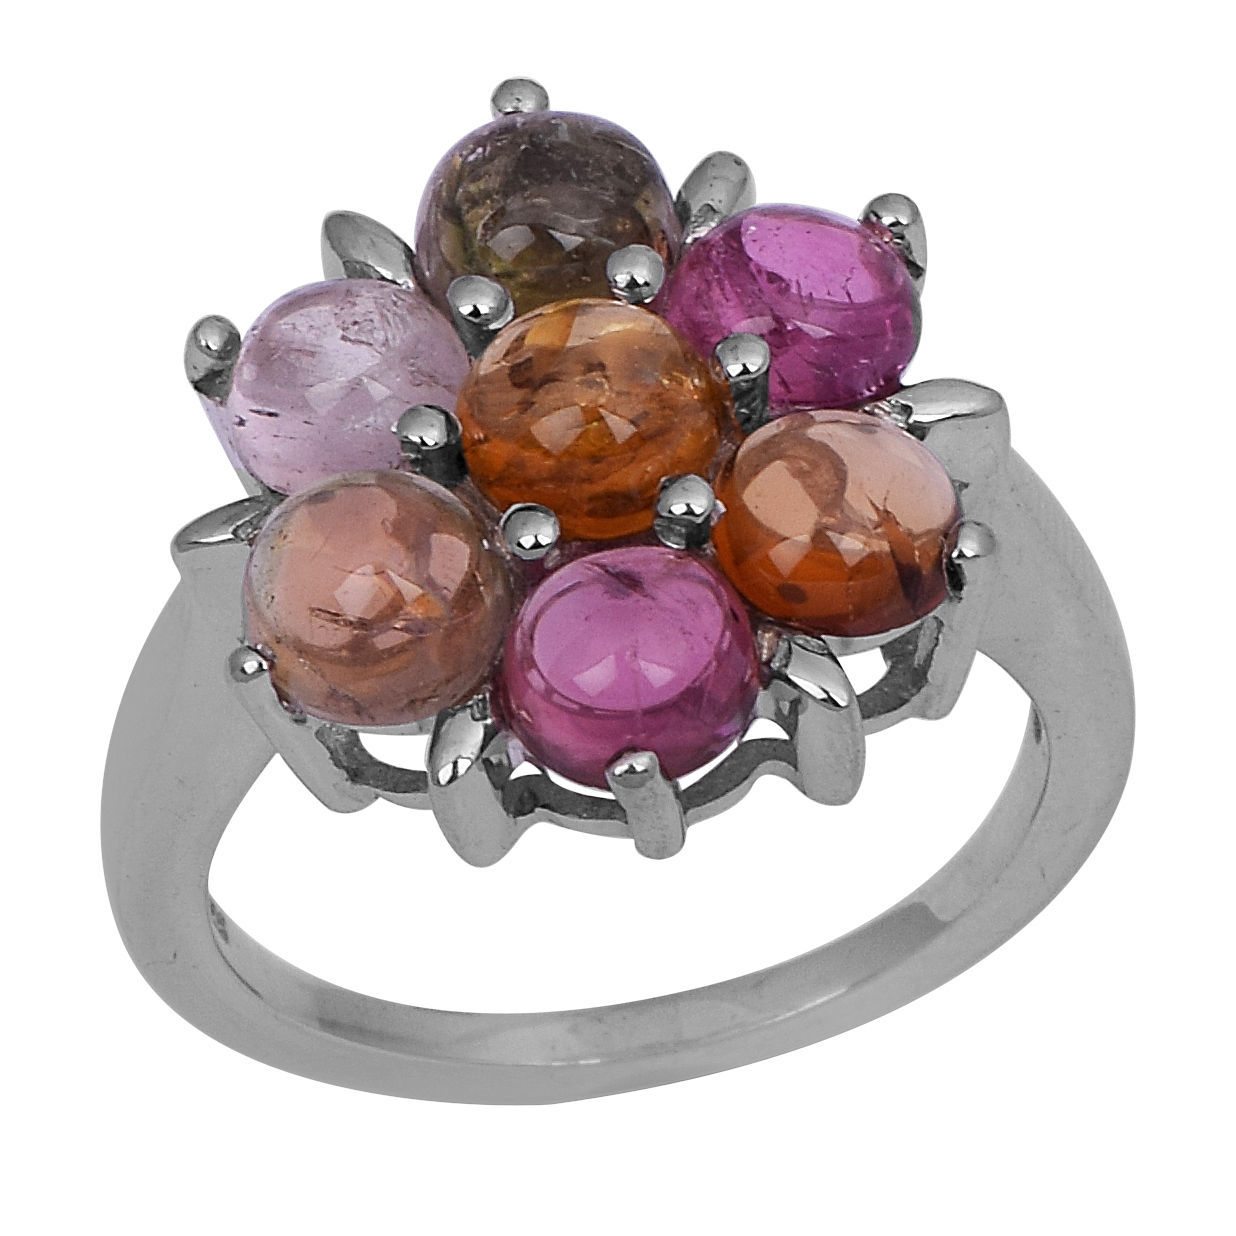 7 Multi Tourmaline Stone Claw Set 925 Sterling Silver Jewelry Ring Sz 7 SHRI0753